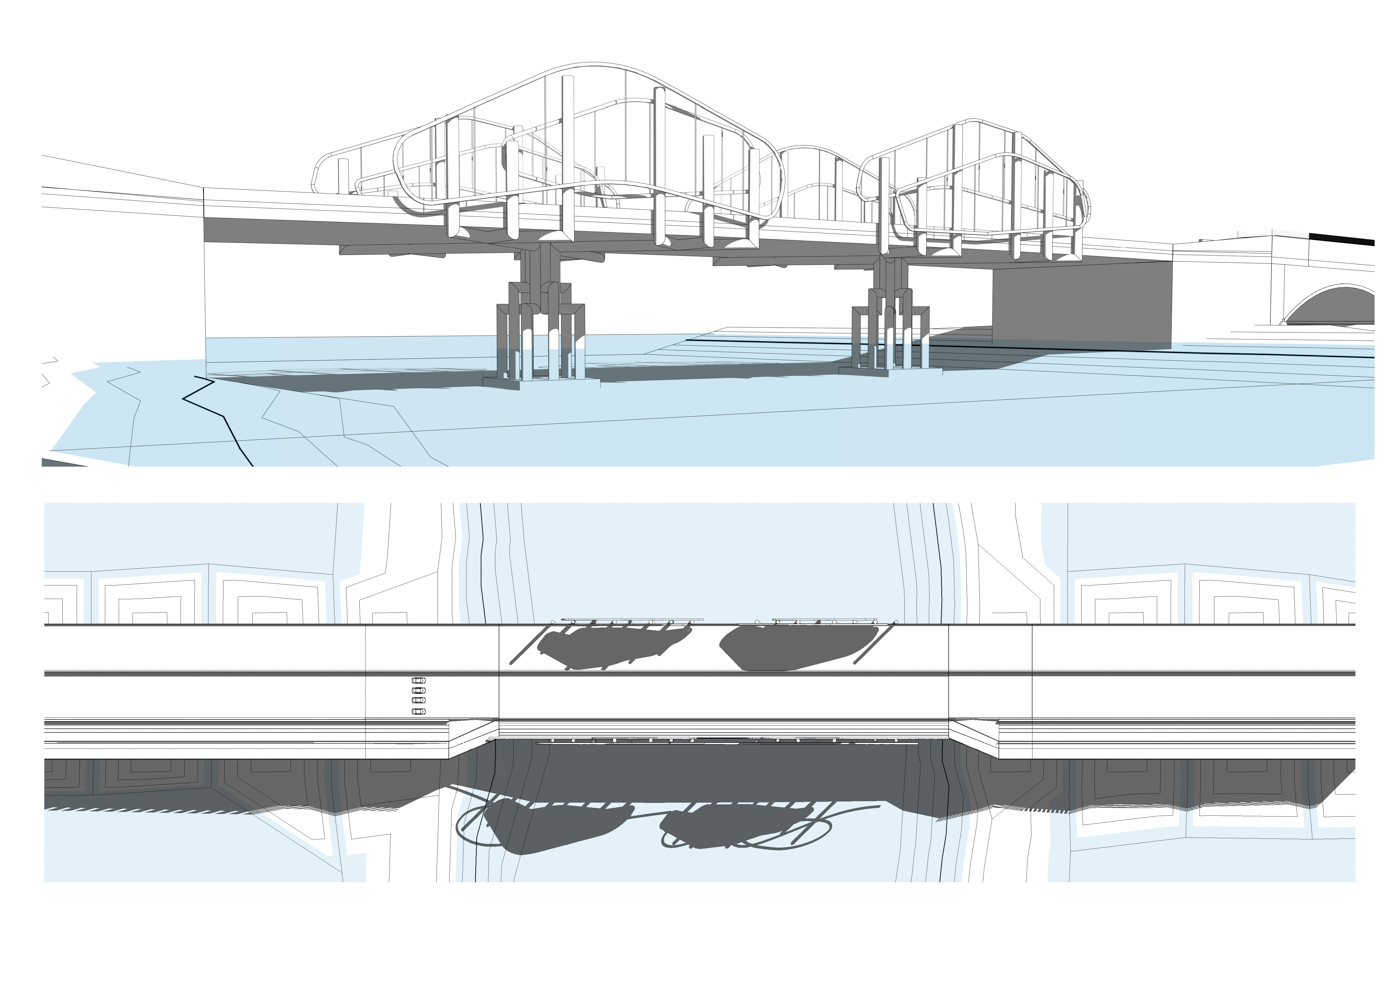 Concept 5: A truss-type bridge consisting of two braced bowstring arches, also inspired by the mangrove forest.